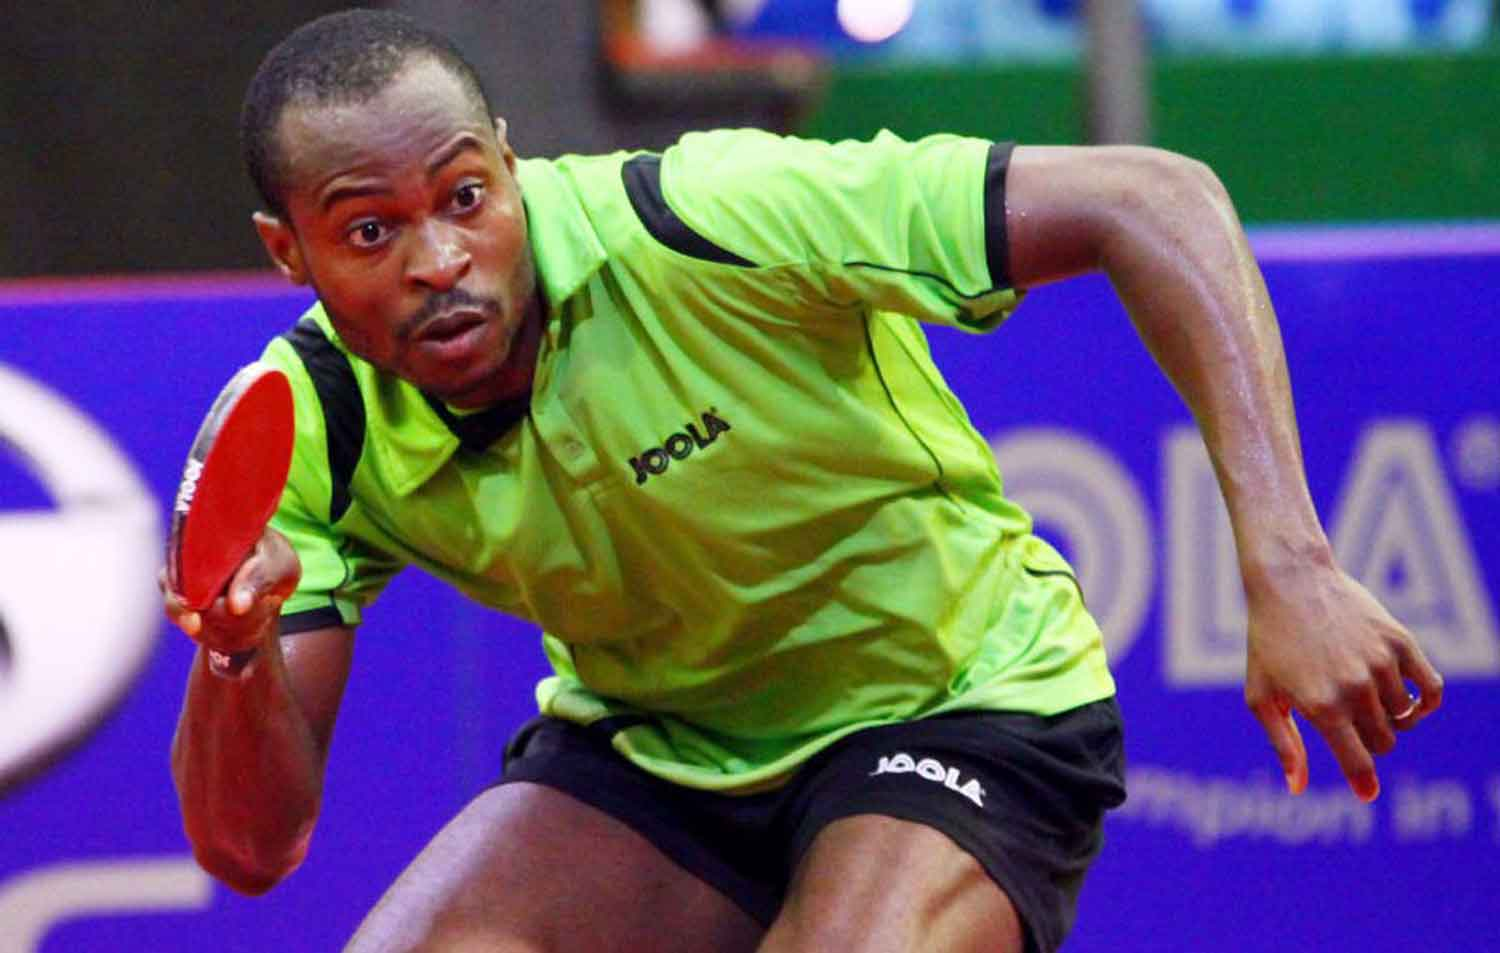 Nigeria's table tennis star qualifies for Tokyo Olympics